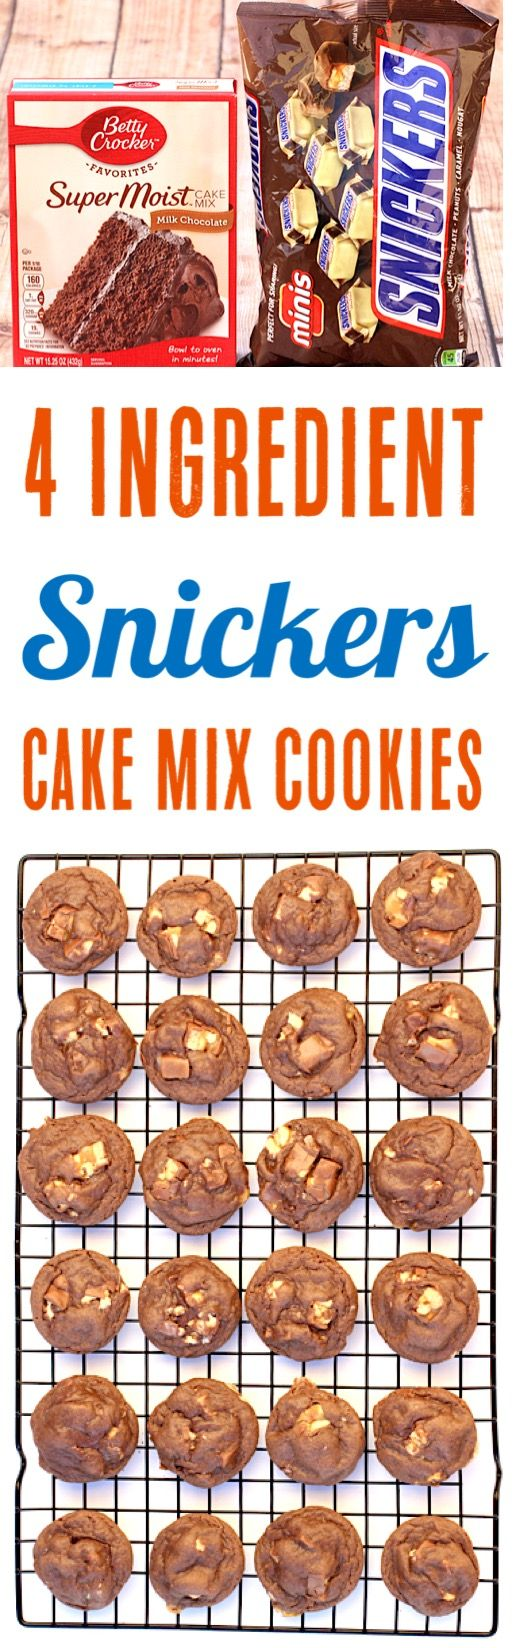 Snickers Cookies Recipes! Easy Chocolate Cake Mix Cookie Recipe using Snickers Candy Bars - Just 4 Ingredients and SO delicious!  Give them a try this week!